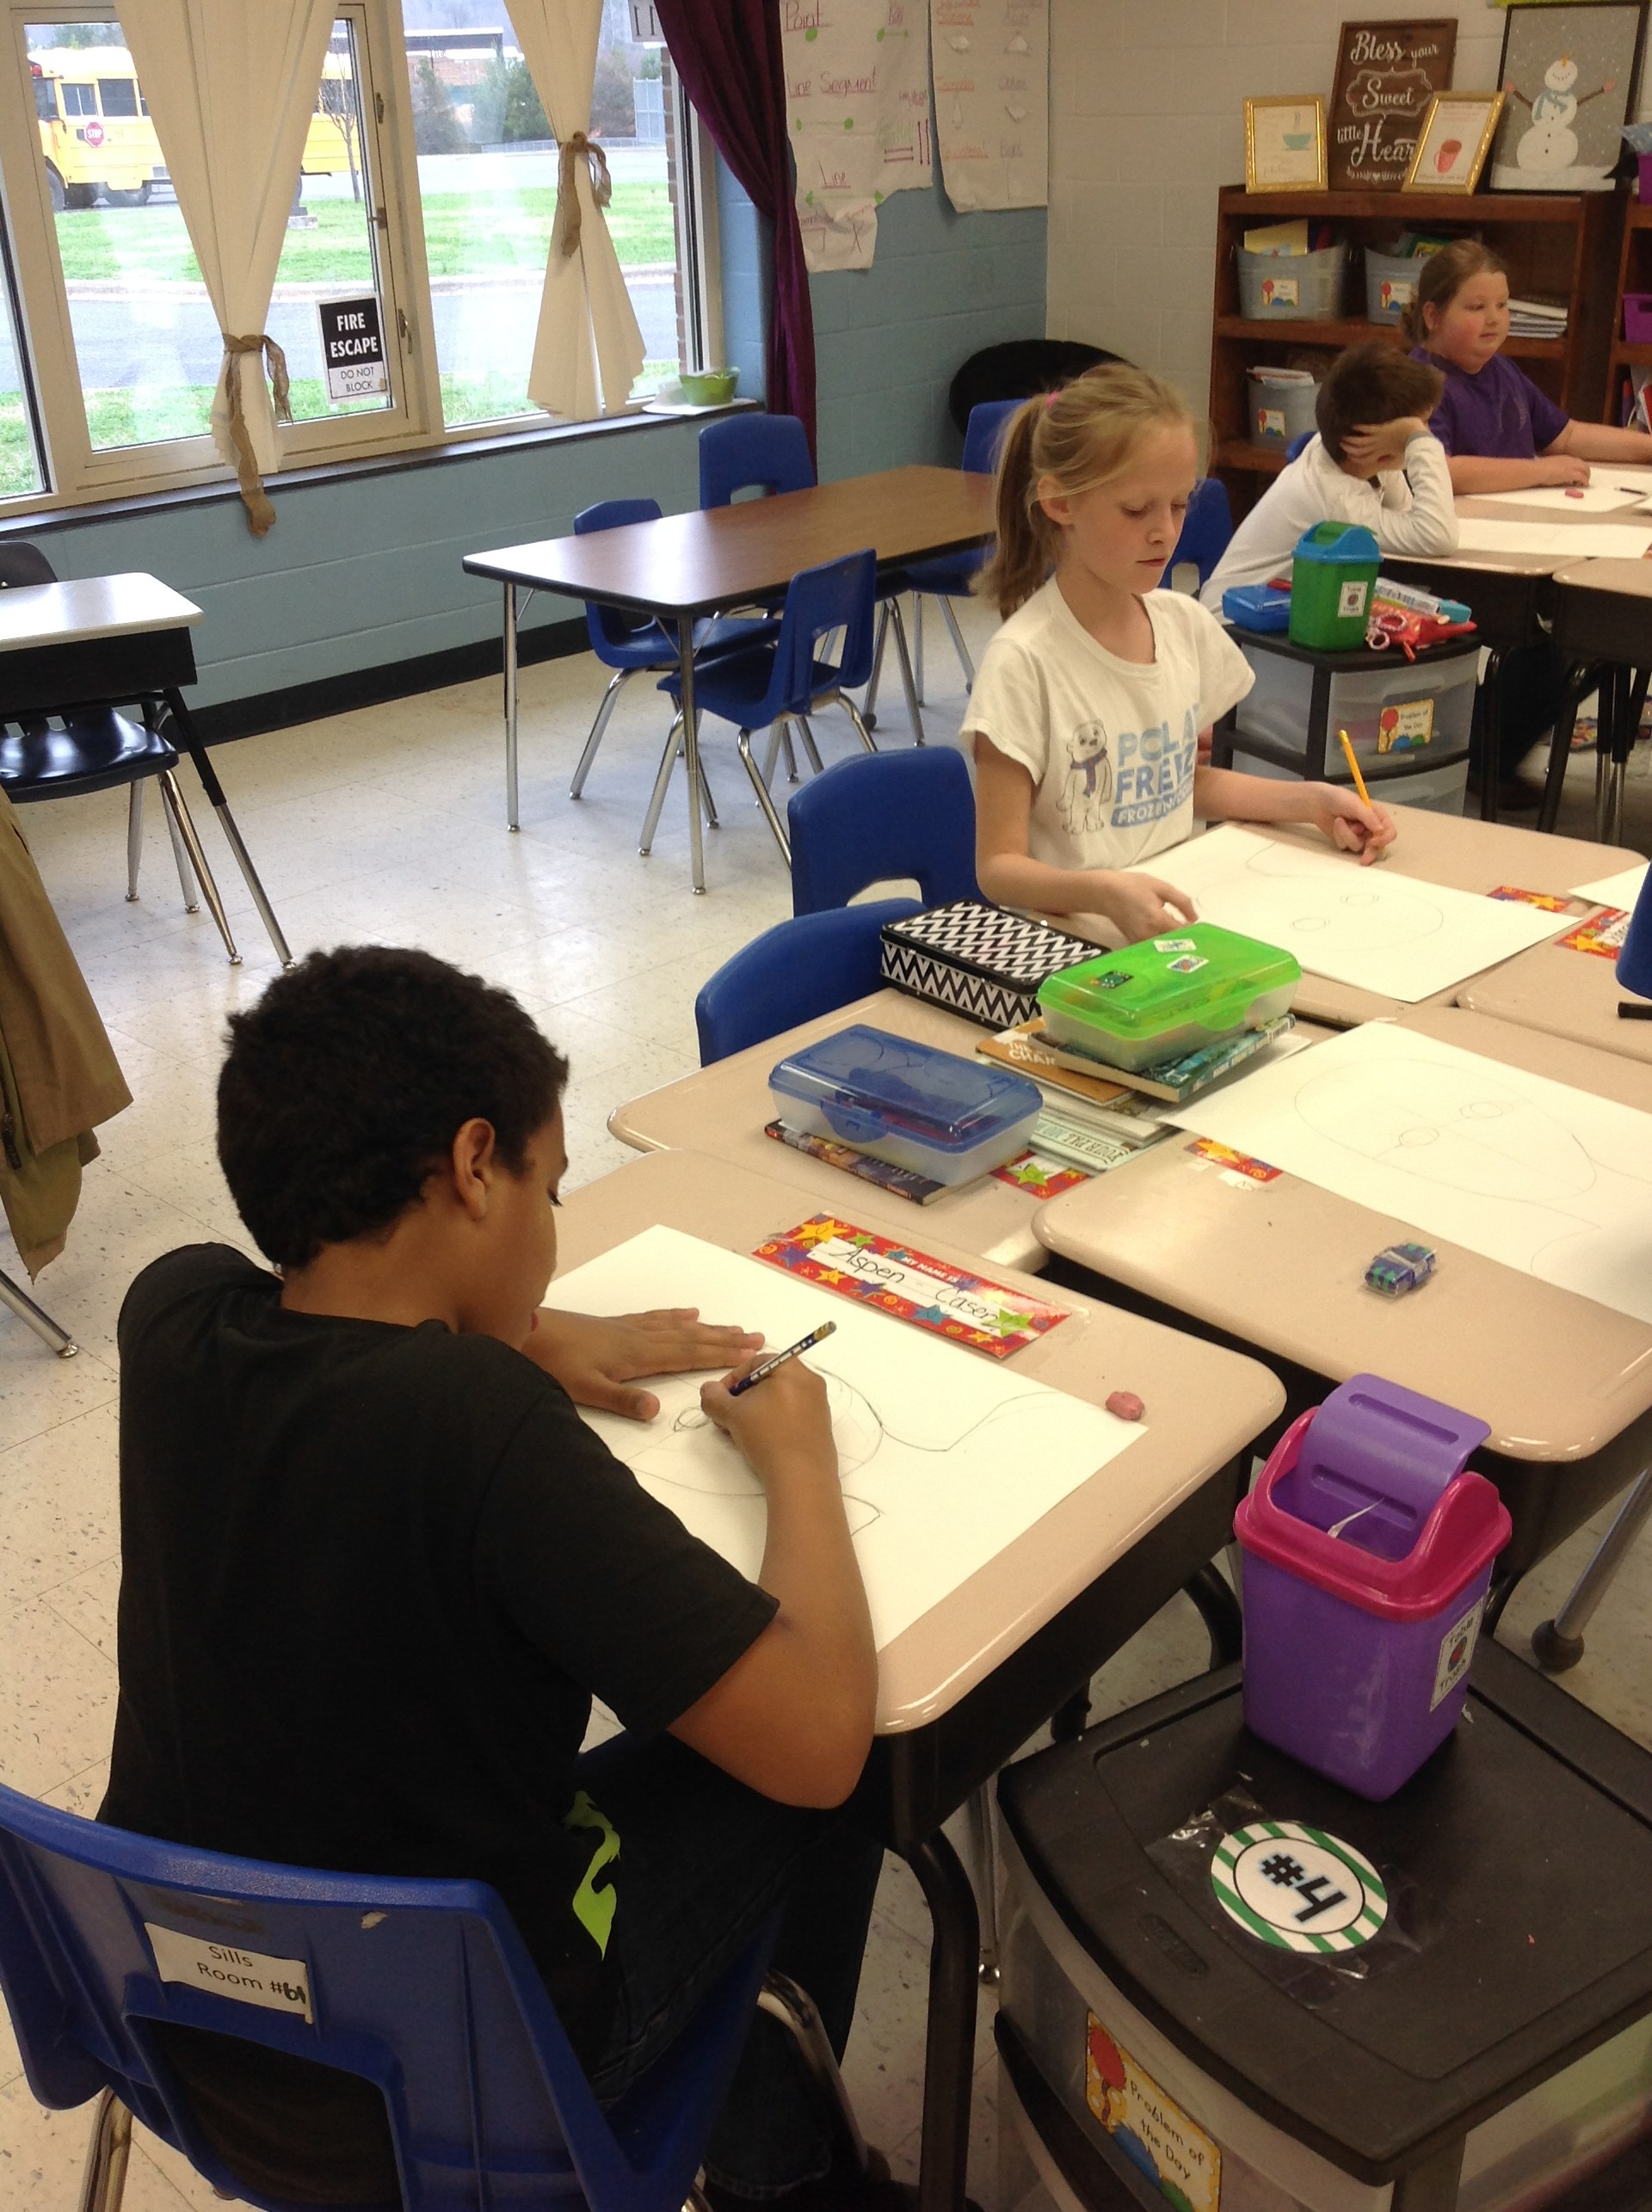 Aspen's group working on their portraits.